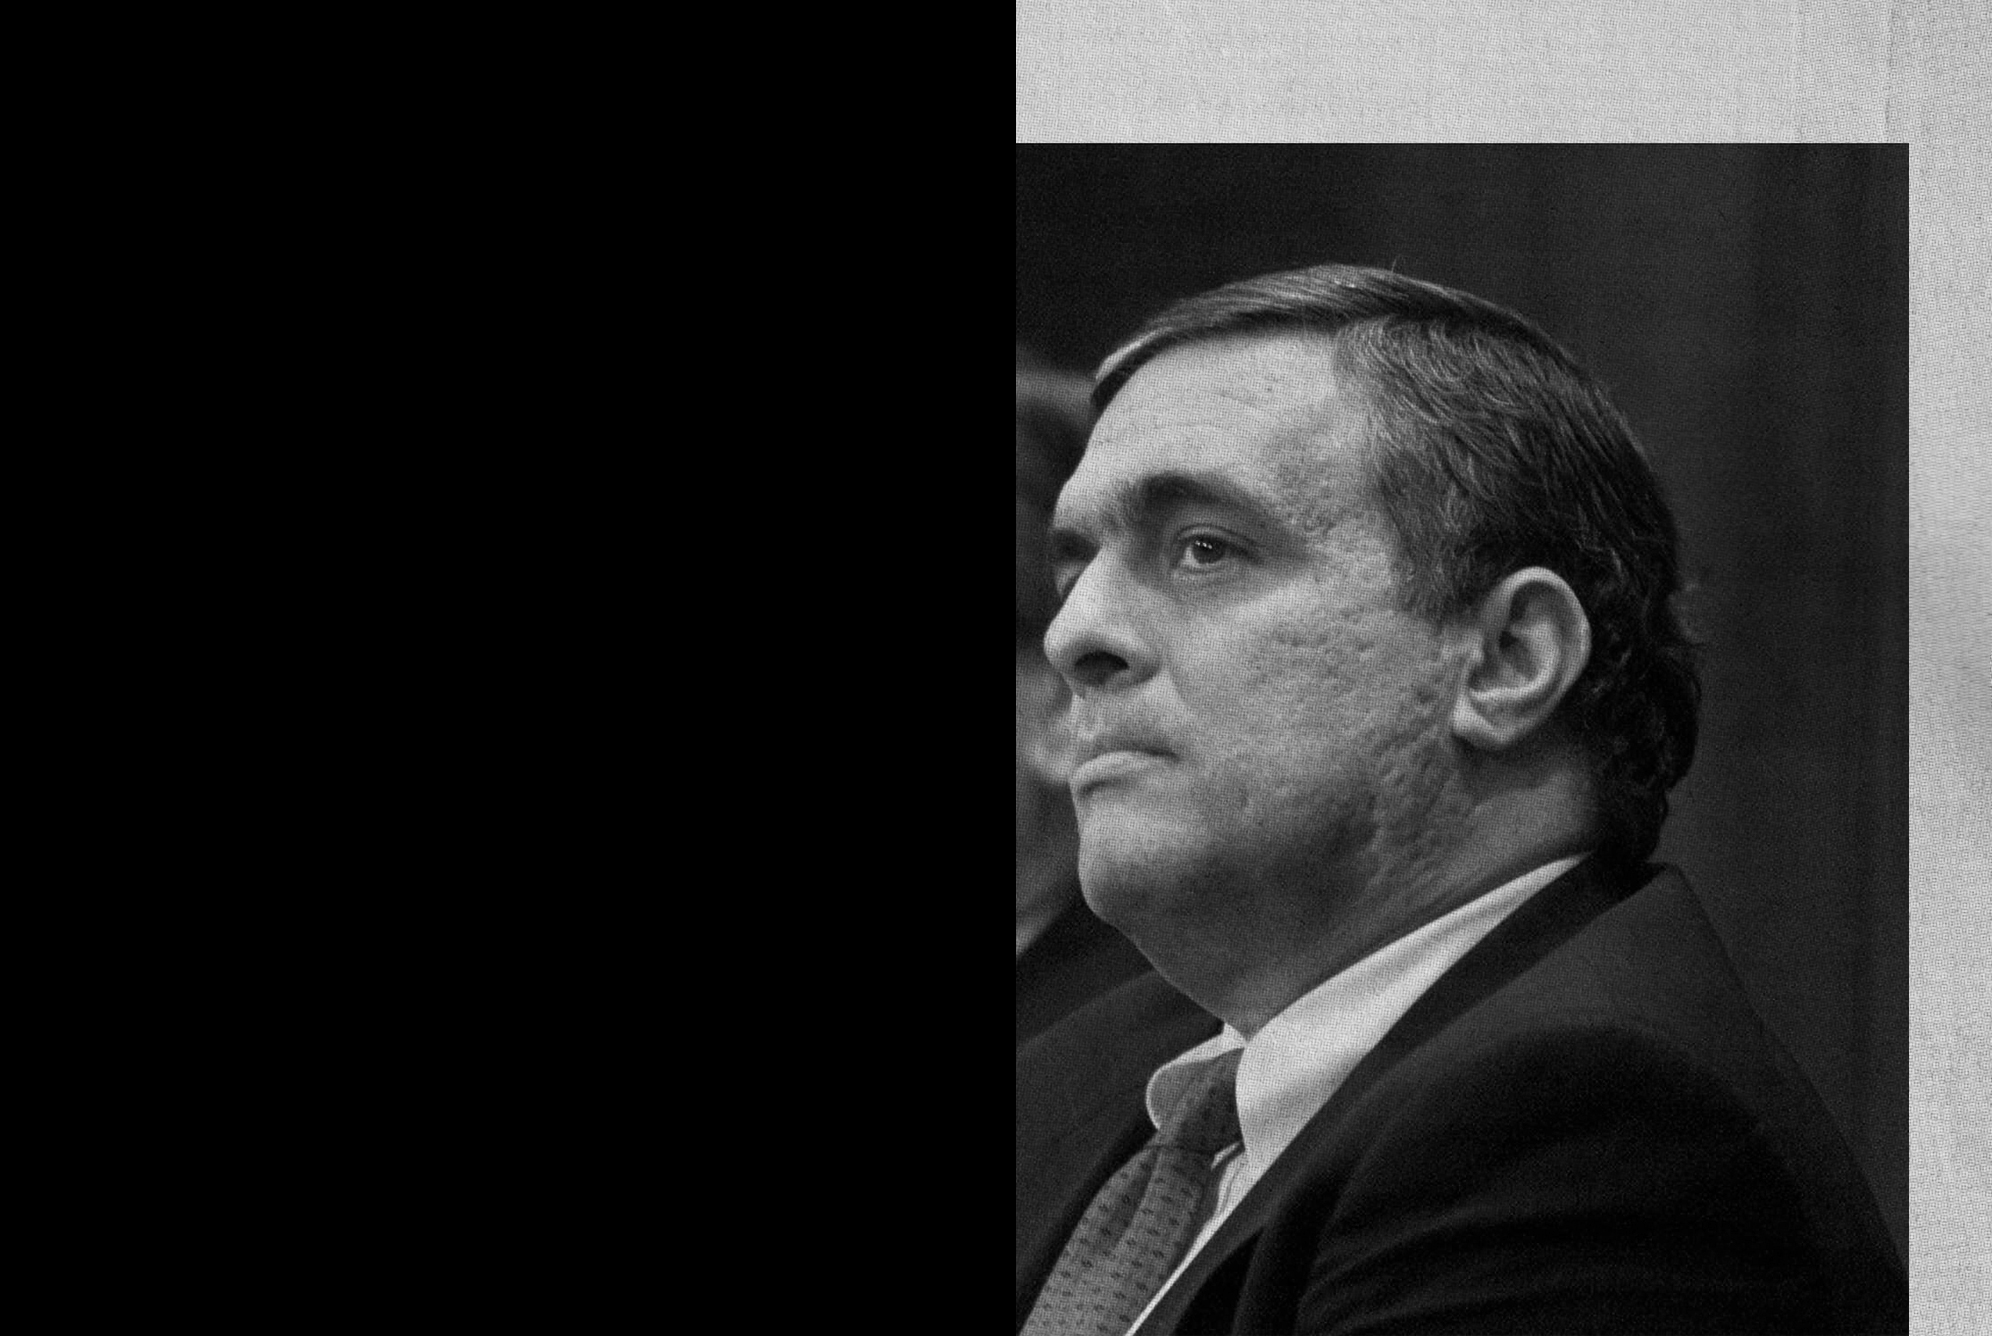 robert philip hanssen essay 1in the united states district court for the eastern district of virginia alexandria division united states of america )) v )) criminal no robert philip hanssen, ).